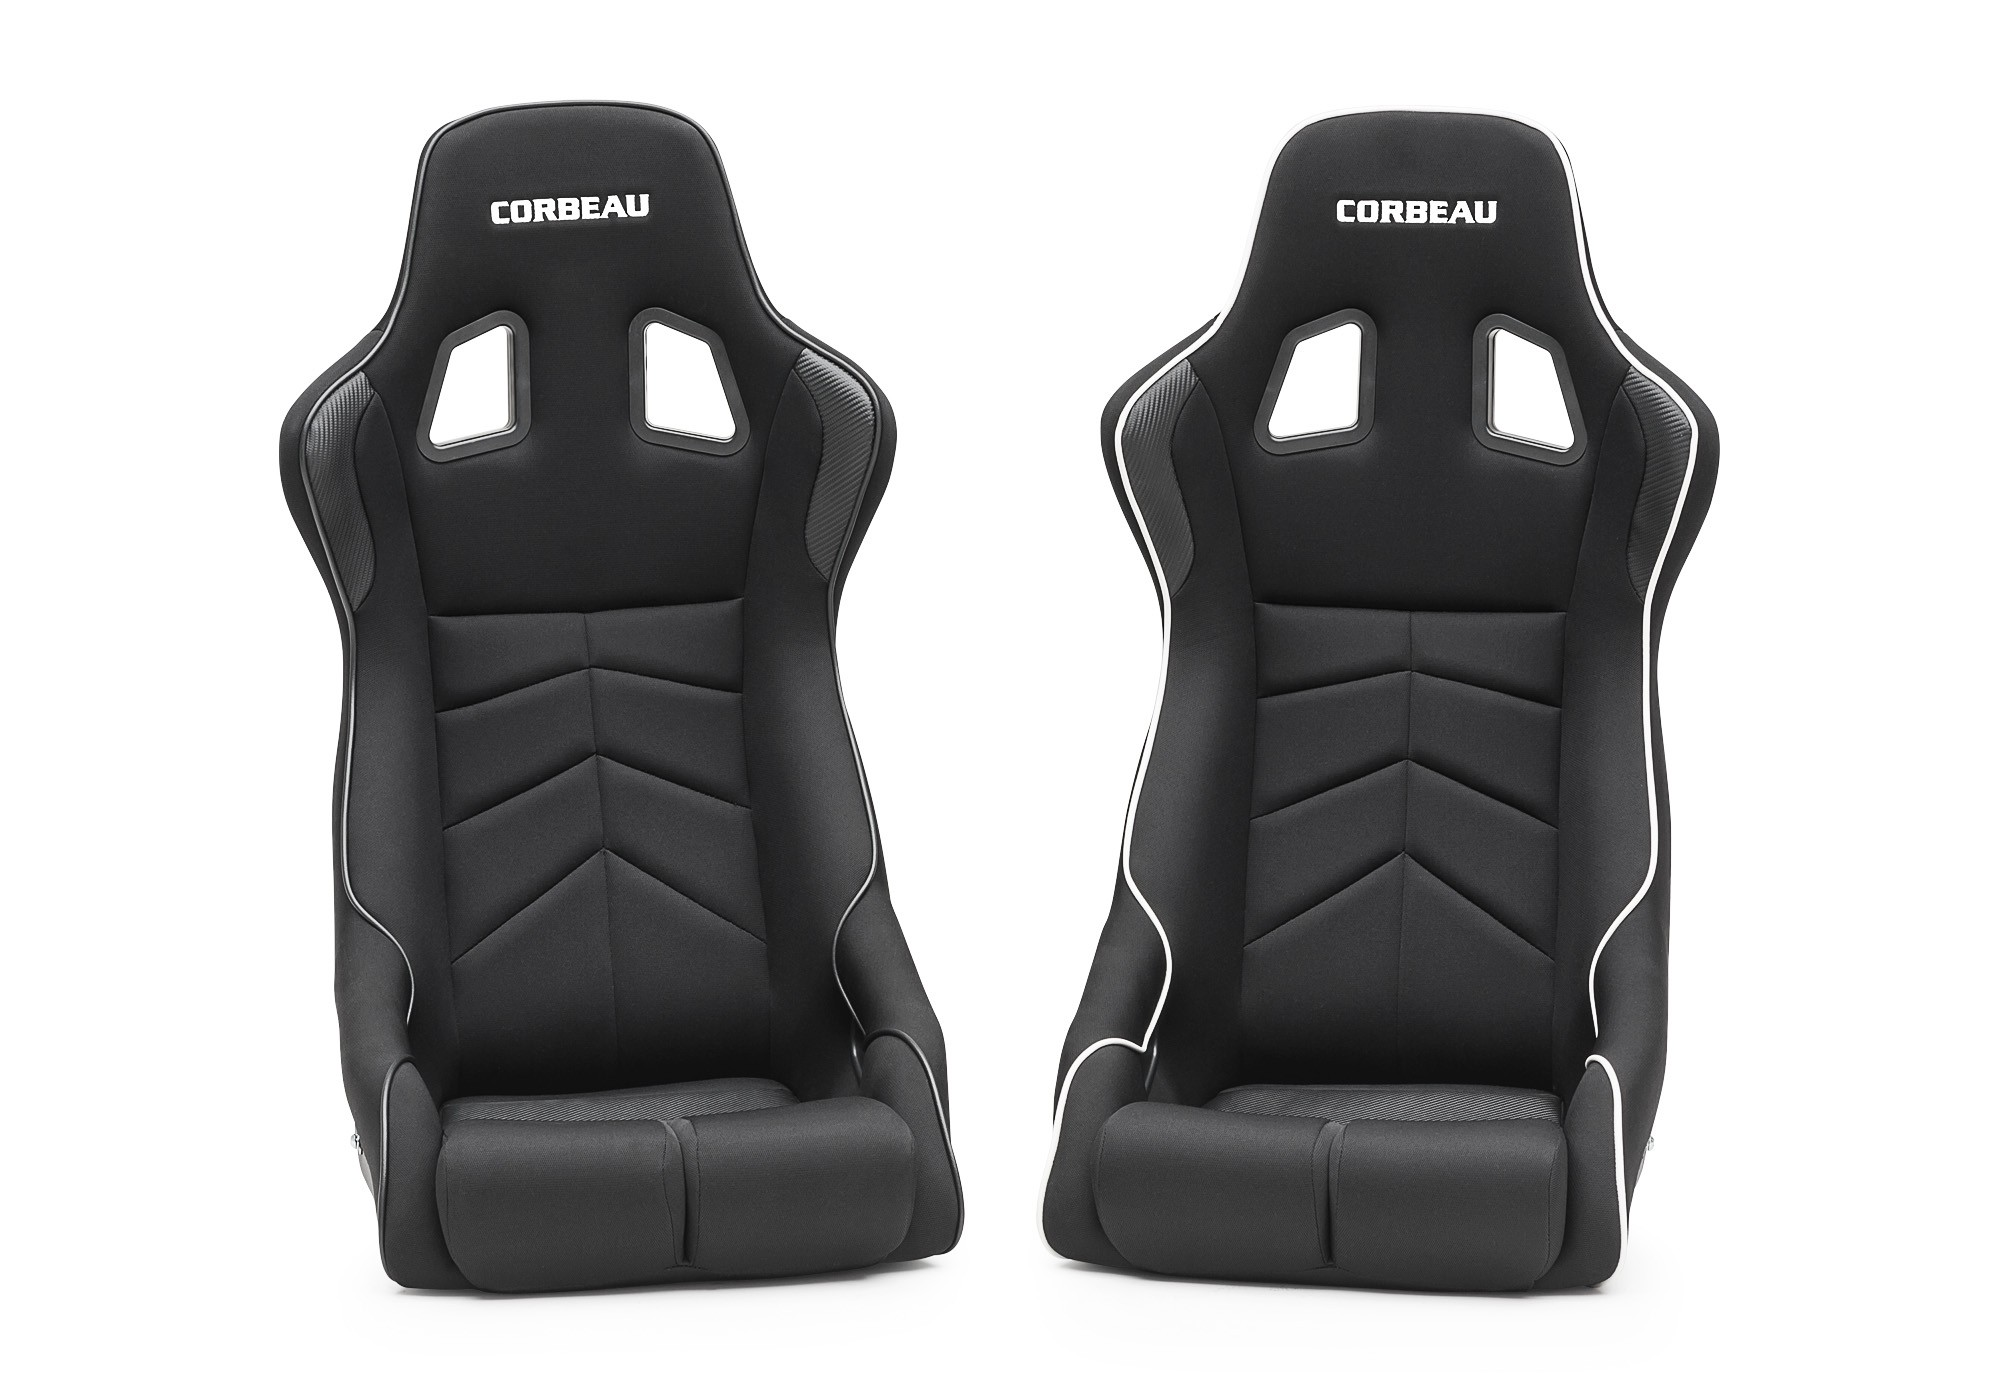 Corbeau DFX Seats - Black Cloth/Vinyl w/Black Piping